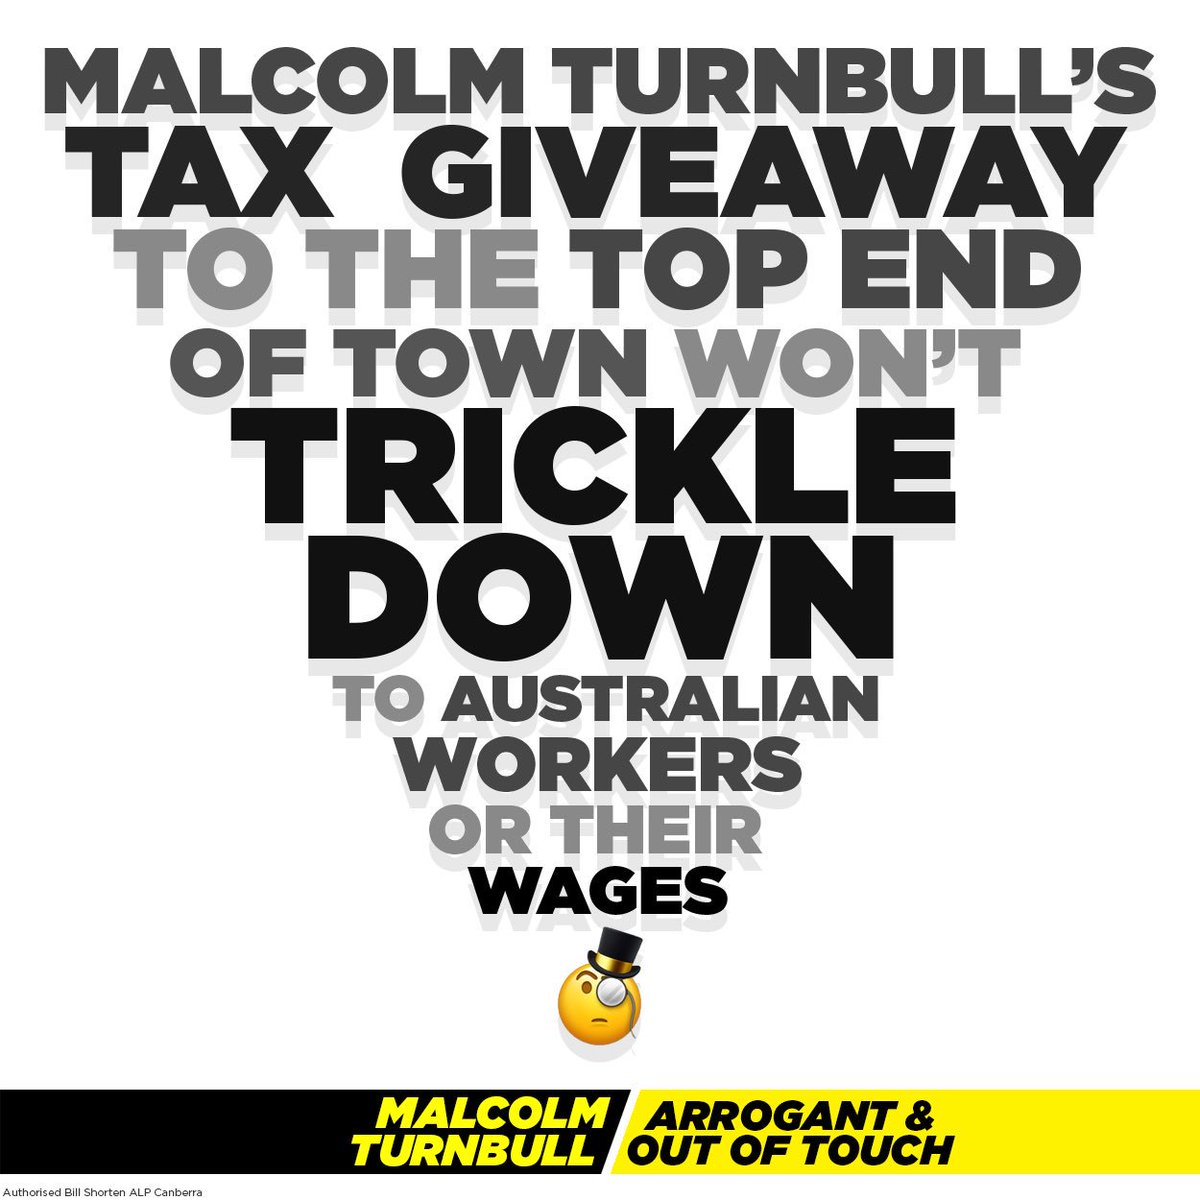 Trickle down economics doesn't work - it never has and it never will.   Can you help me spread the word by sharing this post? Turnbull needs to get the message: stop looking after billionaires and focus on battlers instead.